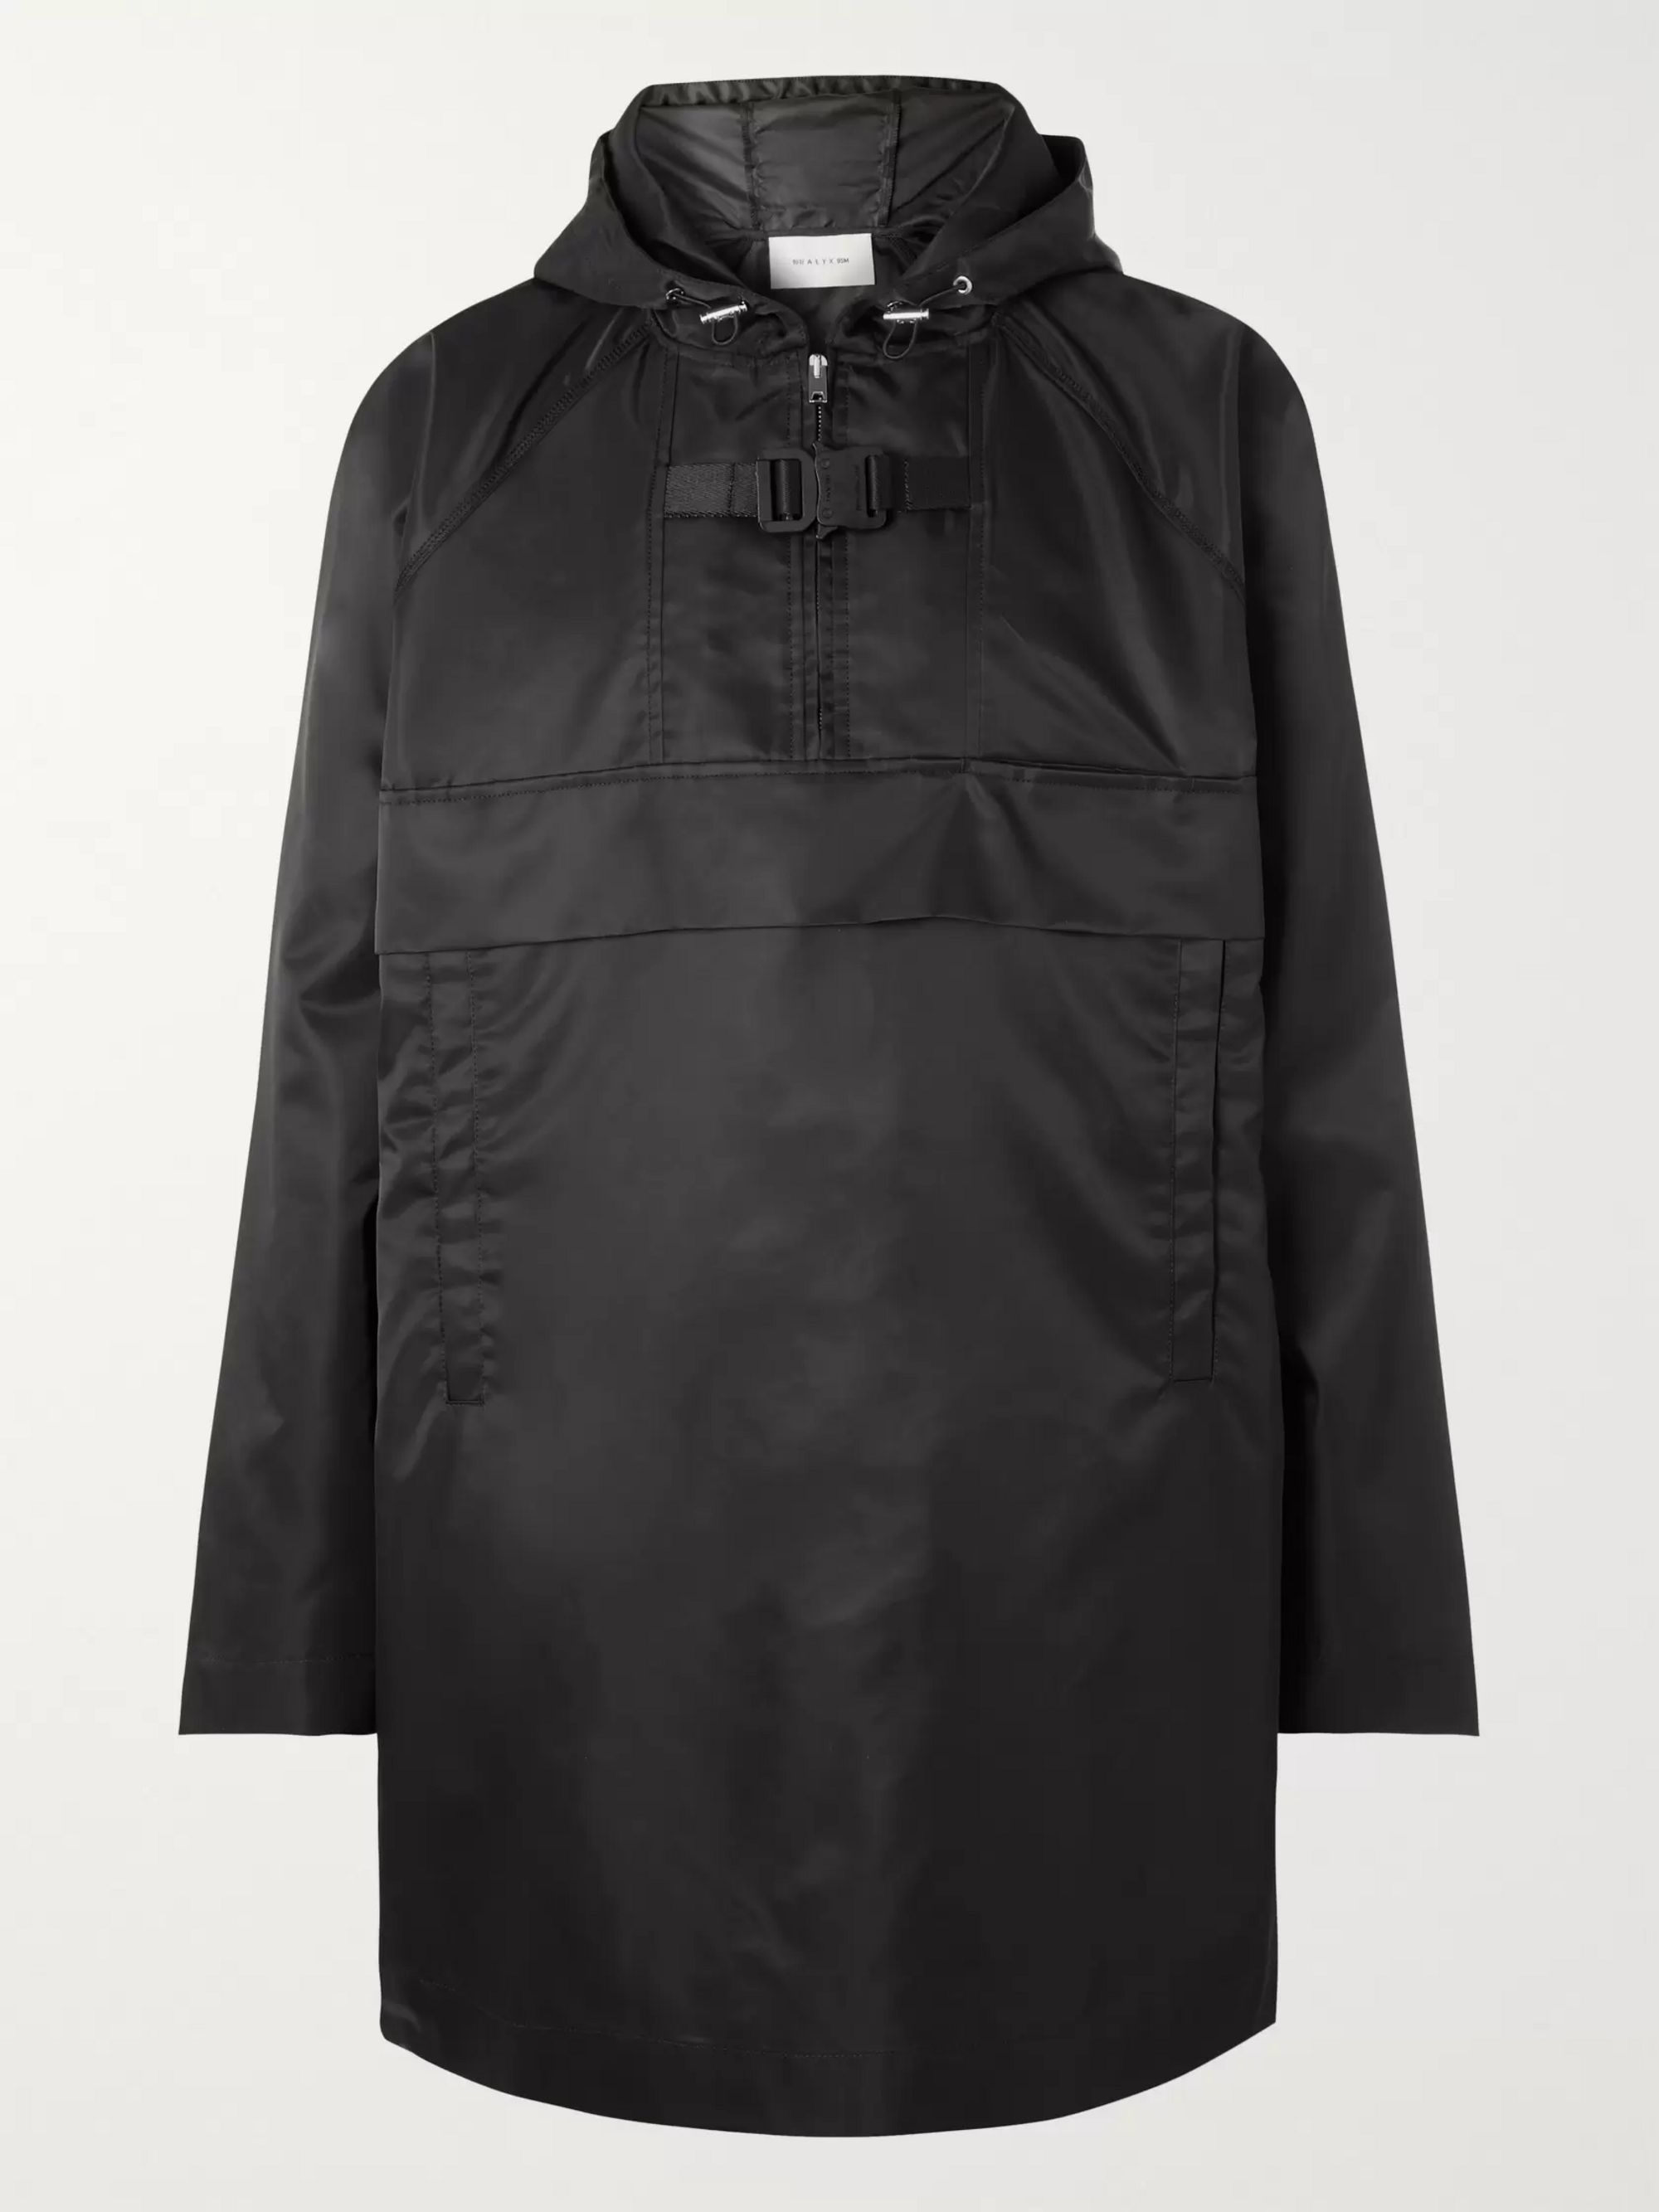 1017 ALYX 9SM Nylon Windbreaker